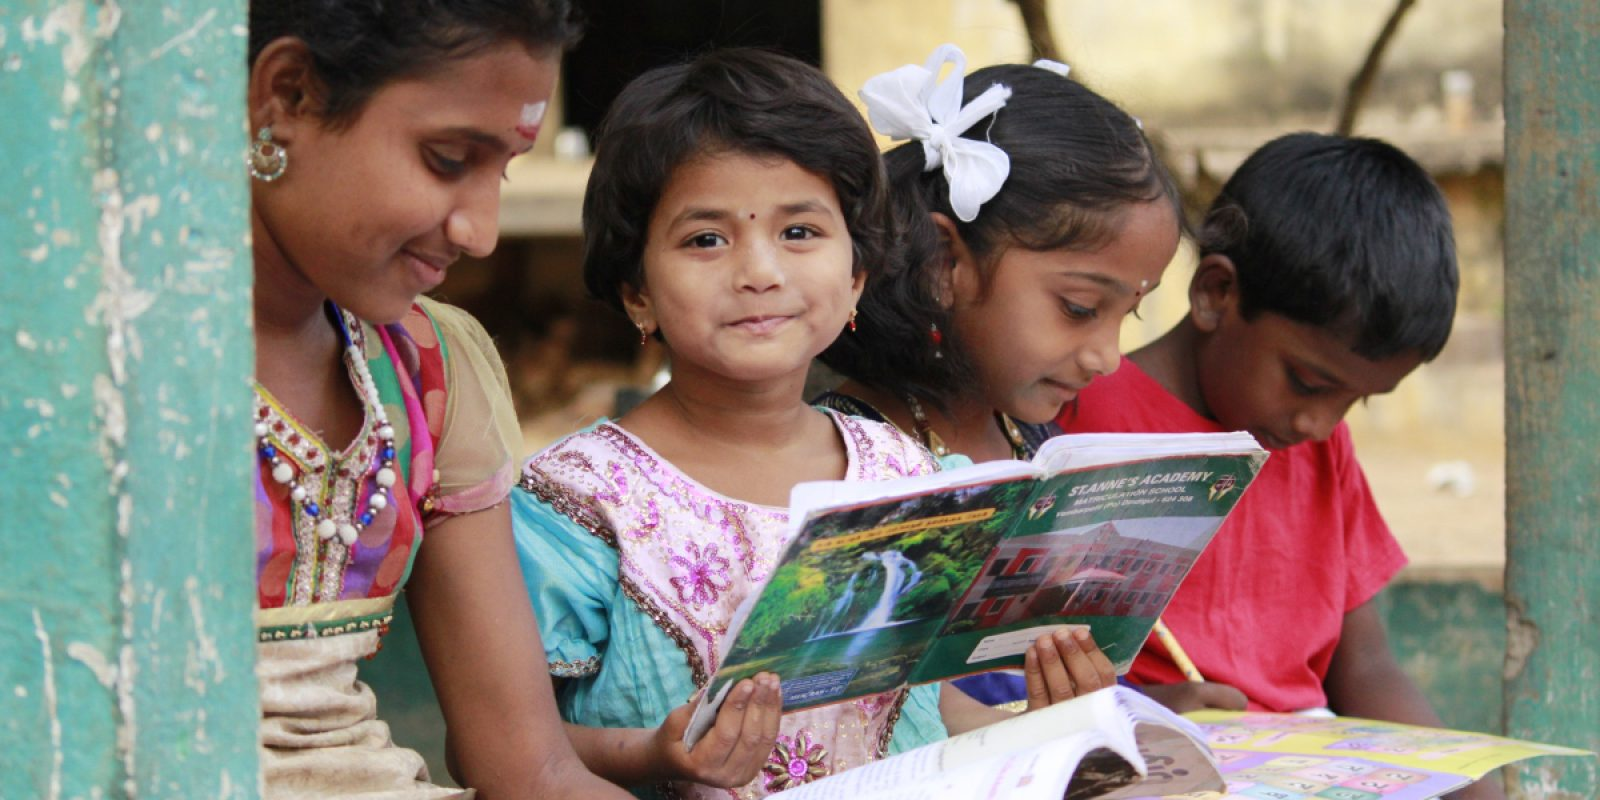 Students at the Jesuit Refugee Service Complementary Education Centre practice reading. (Jesuit Refugee Service)